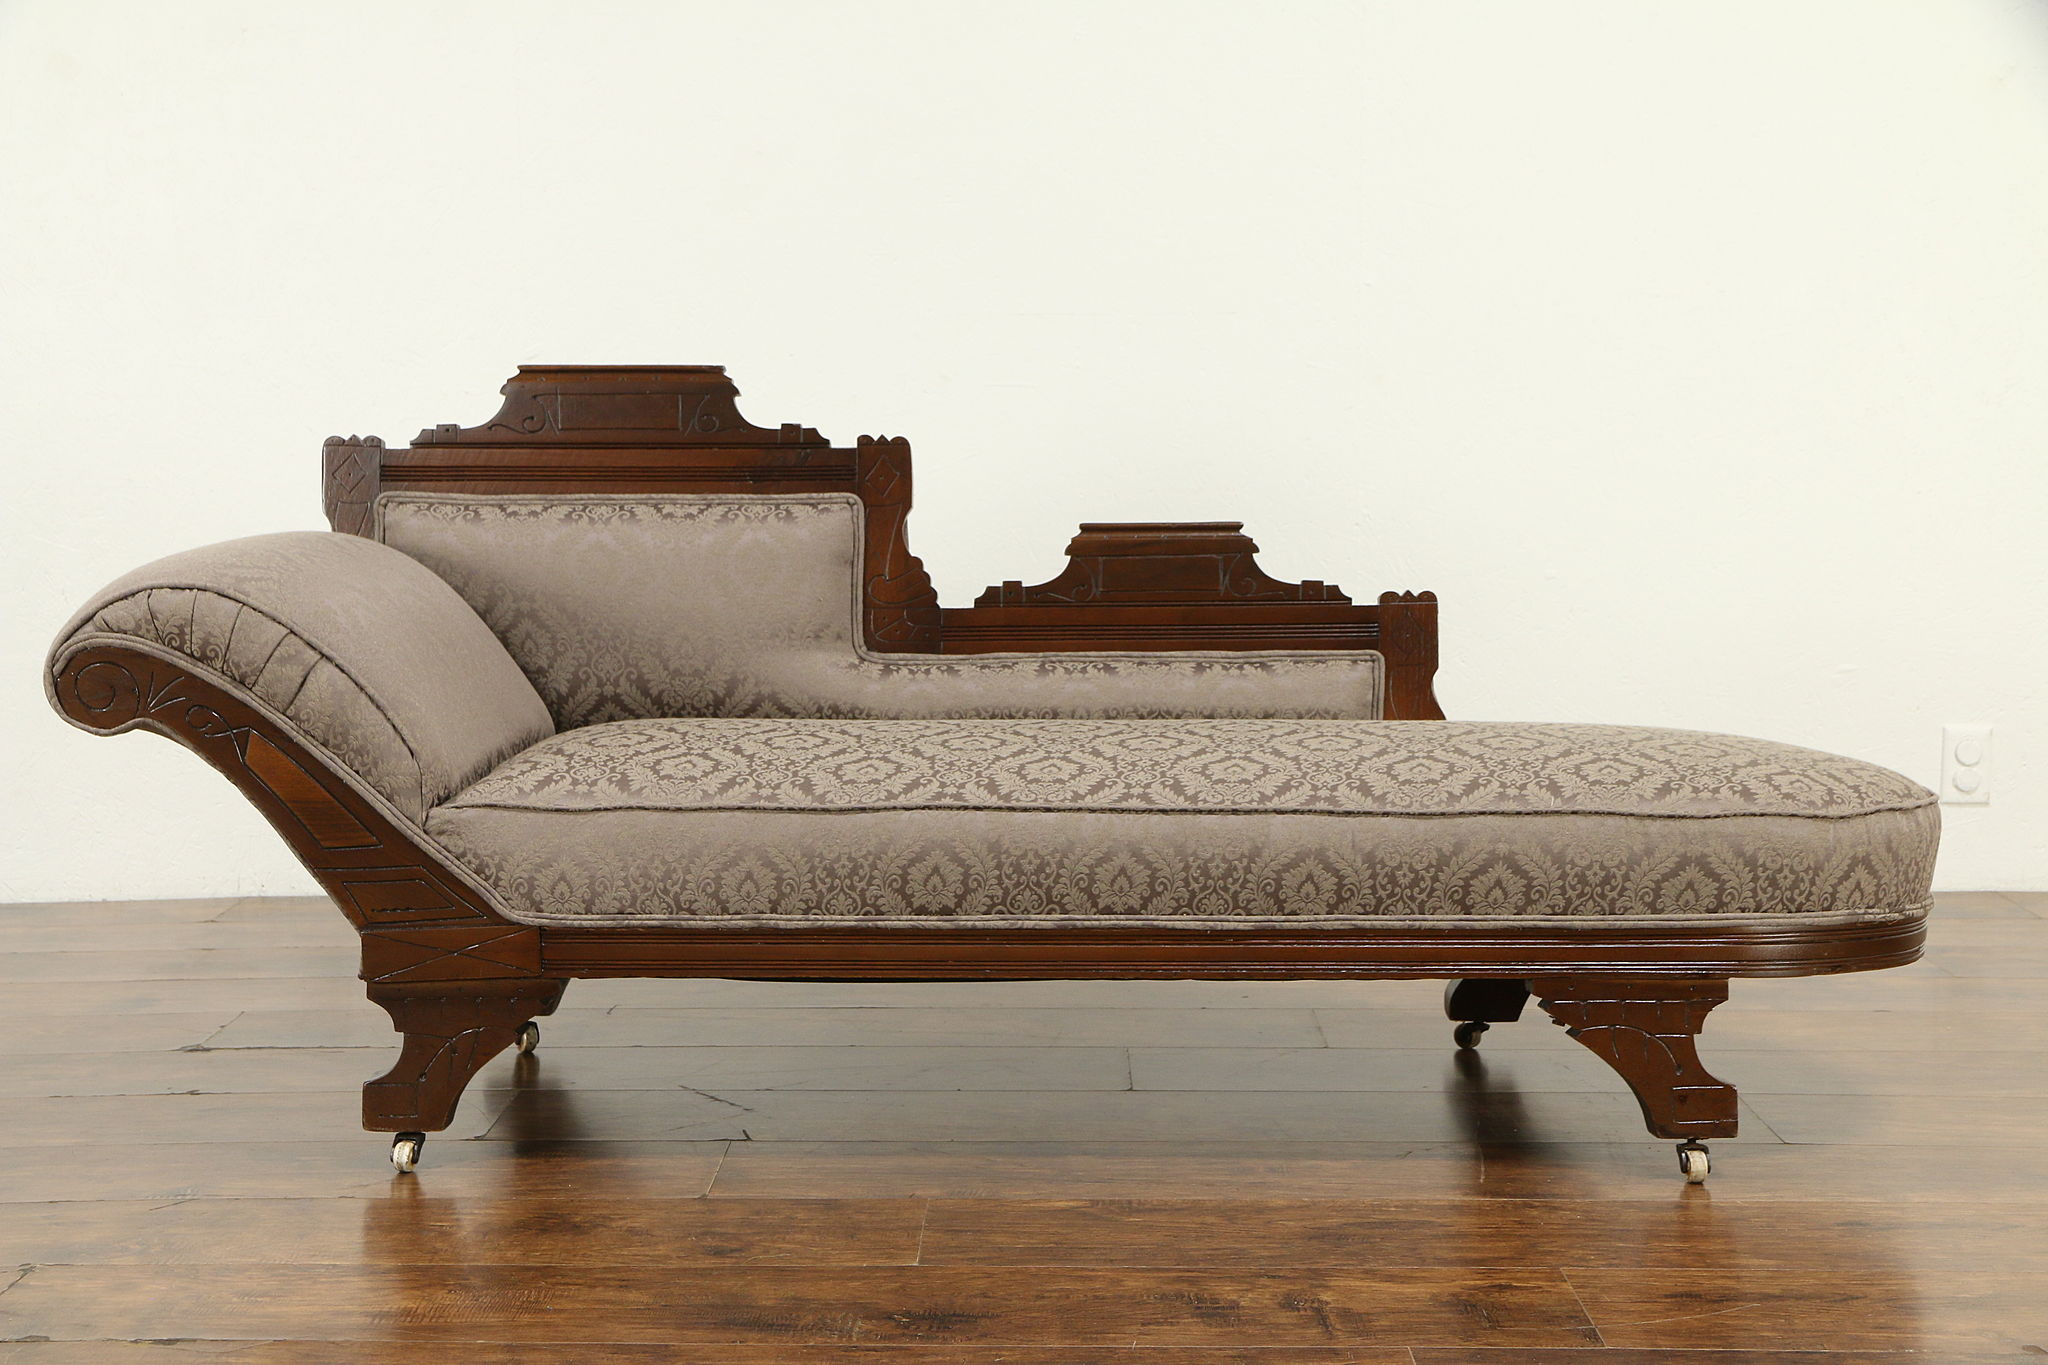 Awe Inspiring Victorian Eastlake Antique Fainting Couch Chaise Lounge New Upholstery 32081 Unemploymentrelief Wooden Chair Designs For Living Room Unemploymentrelieforg